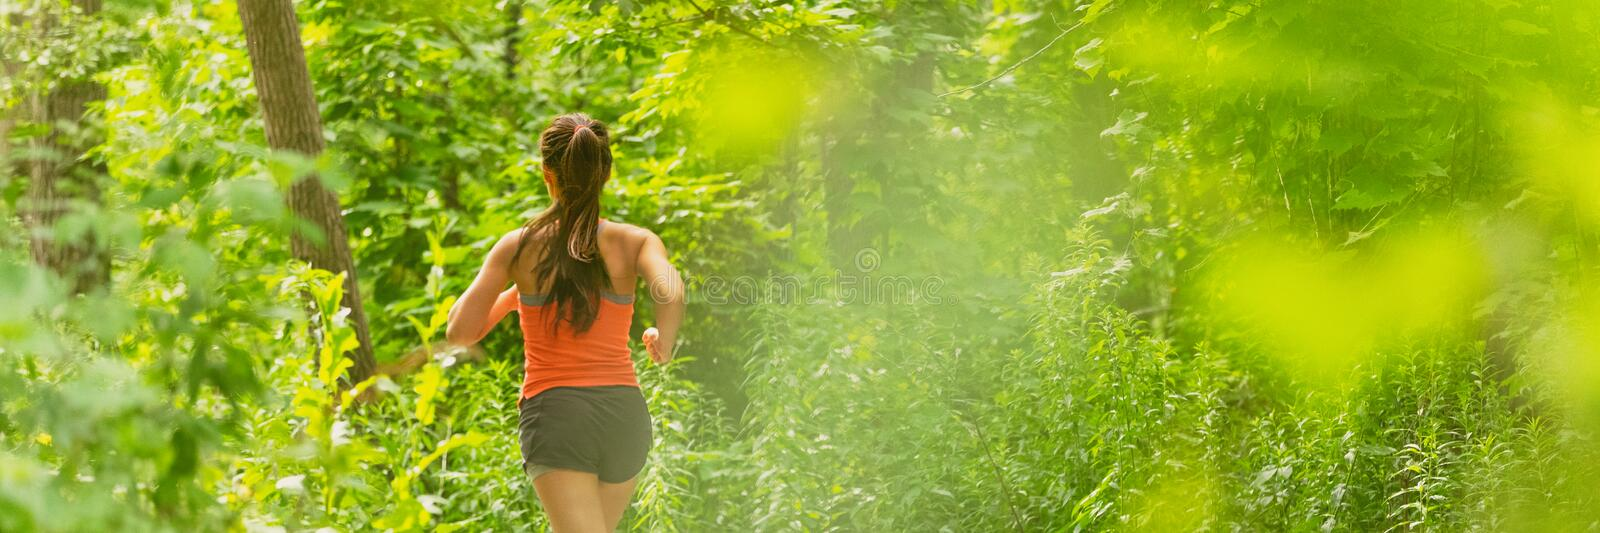 Run panoramic fit active lifestyle of runner woman running in summer background banner outdoor in city park green nature. Athlete. Training stock photos